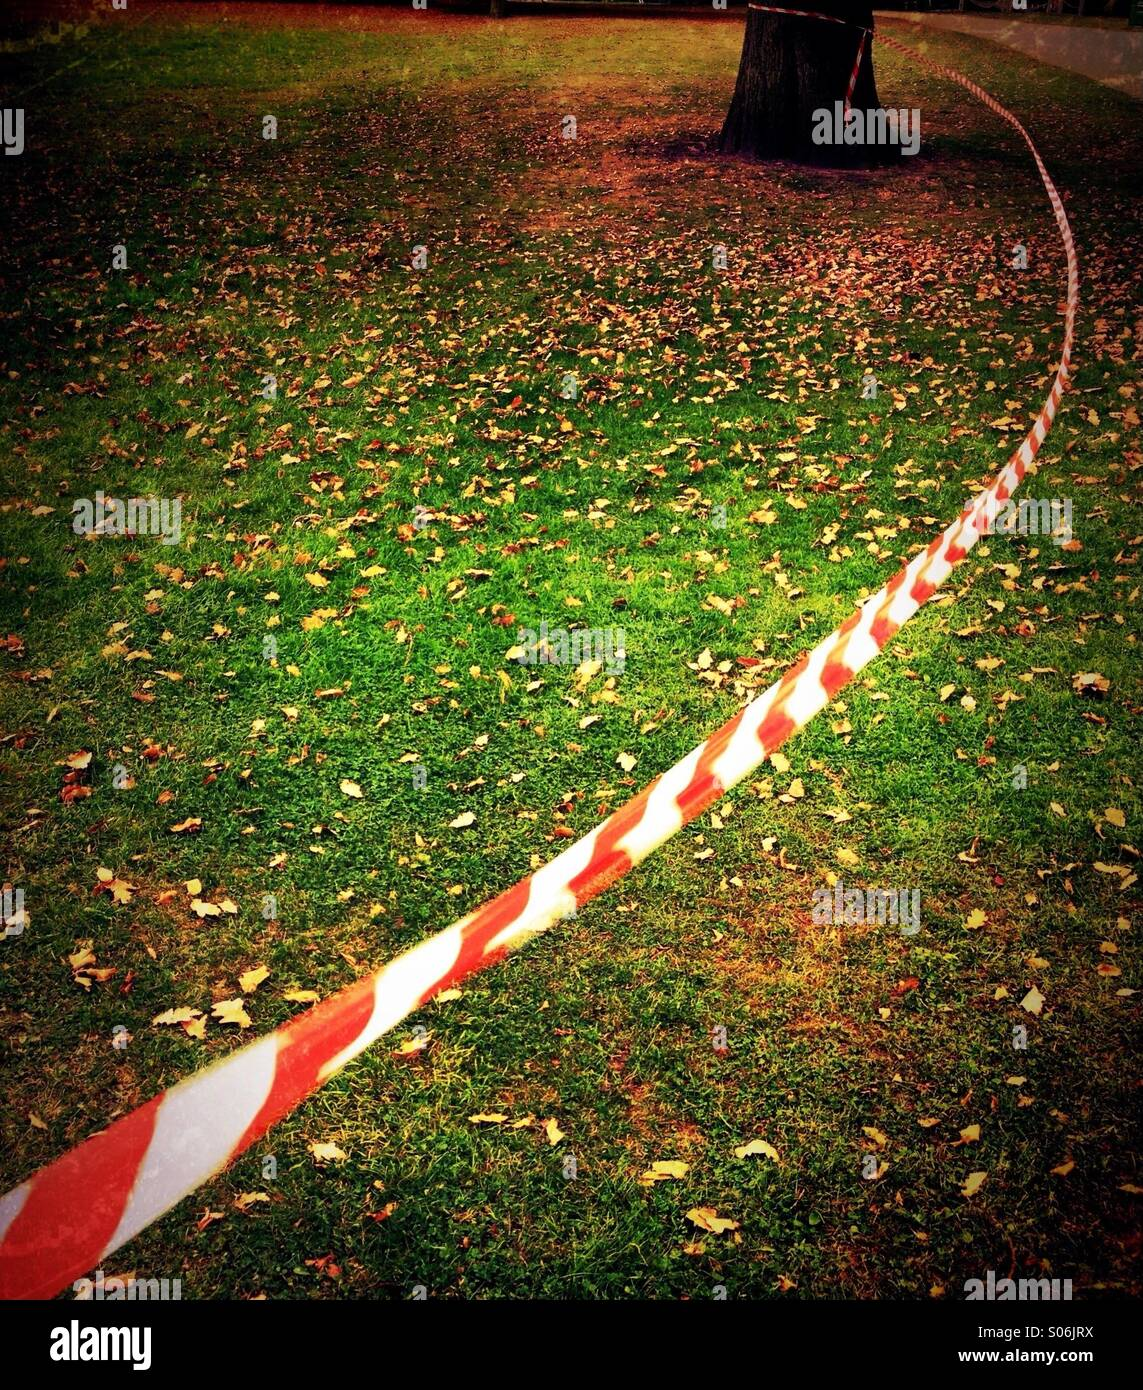 Red and white market tape blowing in wind - Stock Image